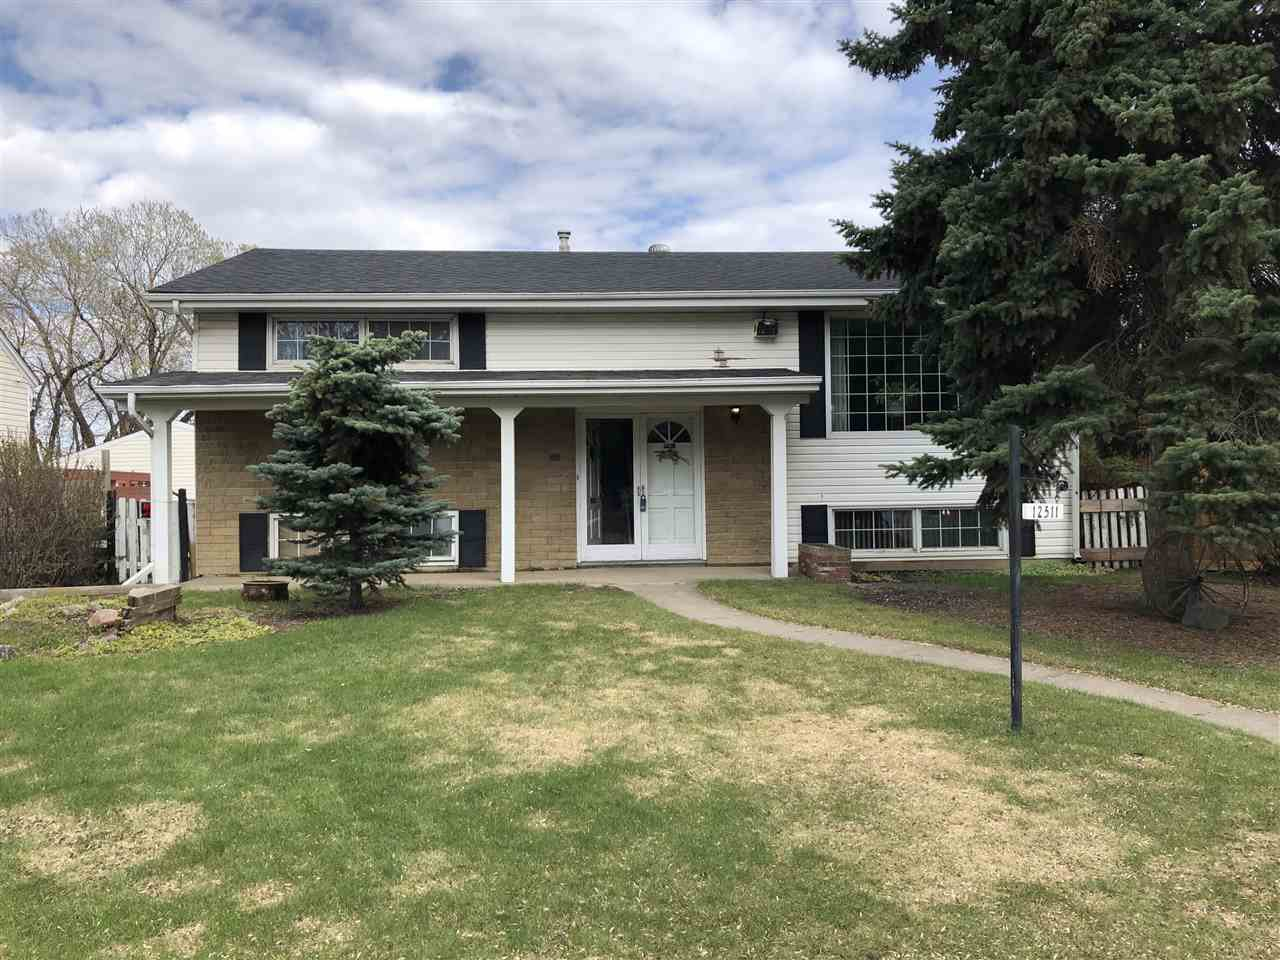 Main Photo: 12511 76 Street in Edmonton: Zone 05 House for sale : MLS®# E4196989